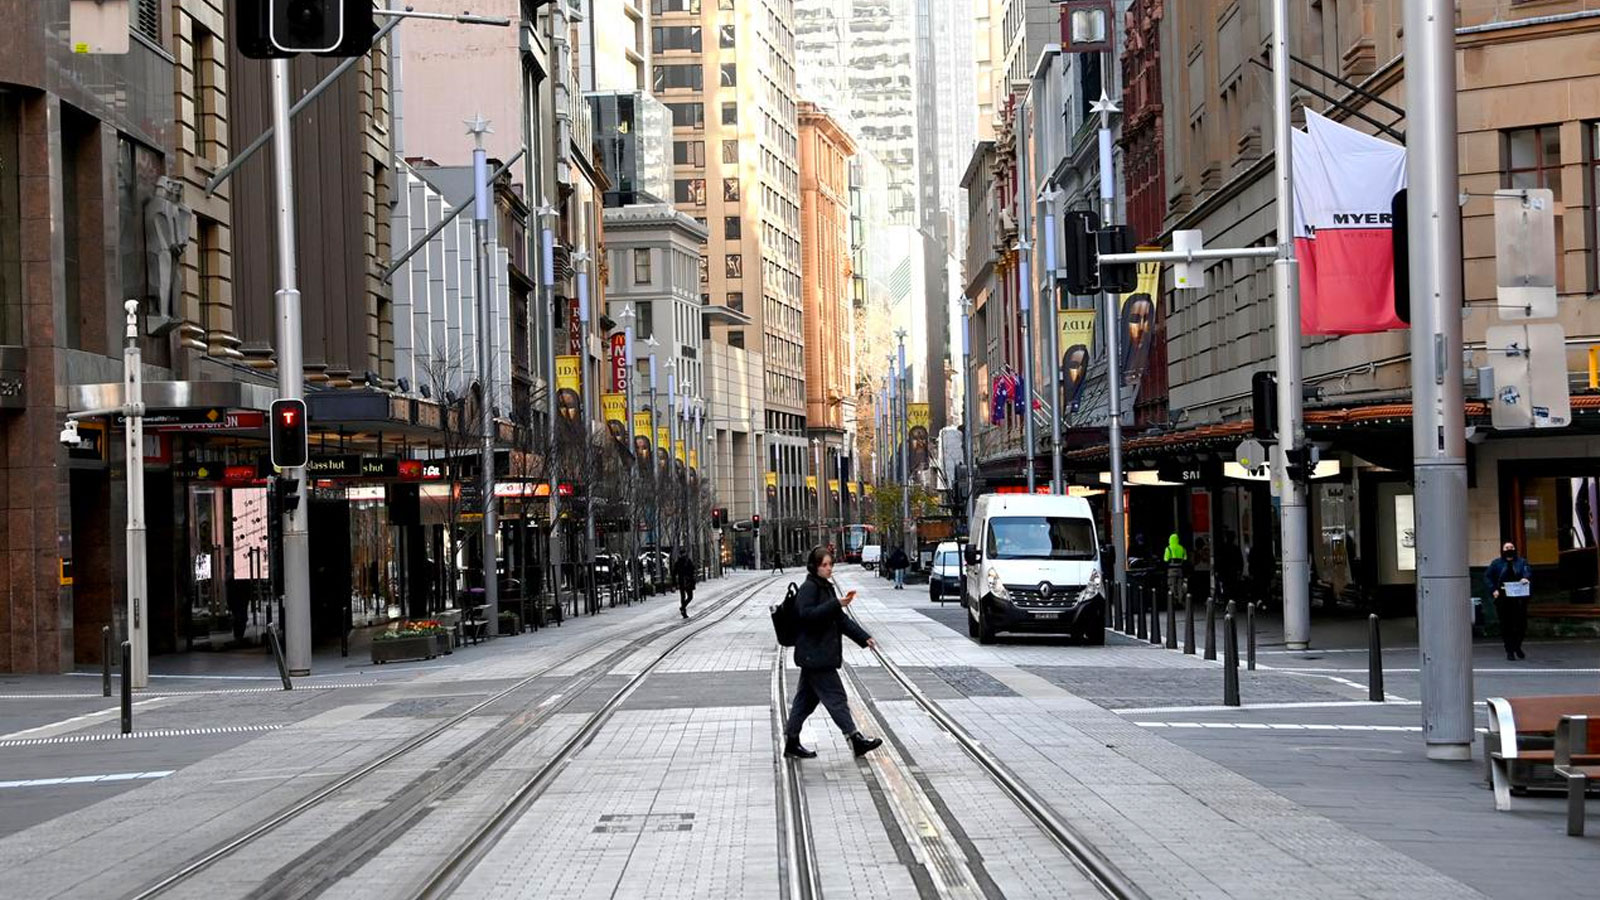 ▲ The retail vacancy rate across Australia's major CBD's has risen amid the fallout from the global pandemic and an increased shift to online retailing.